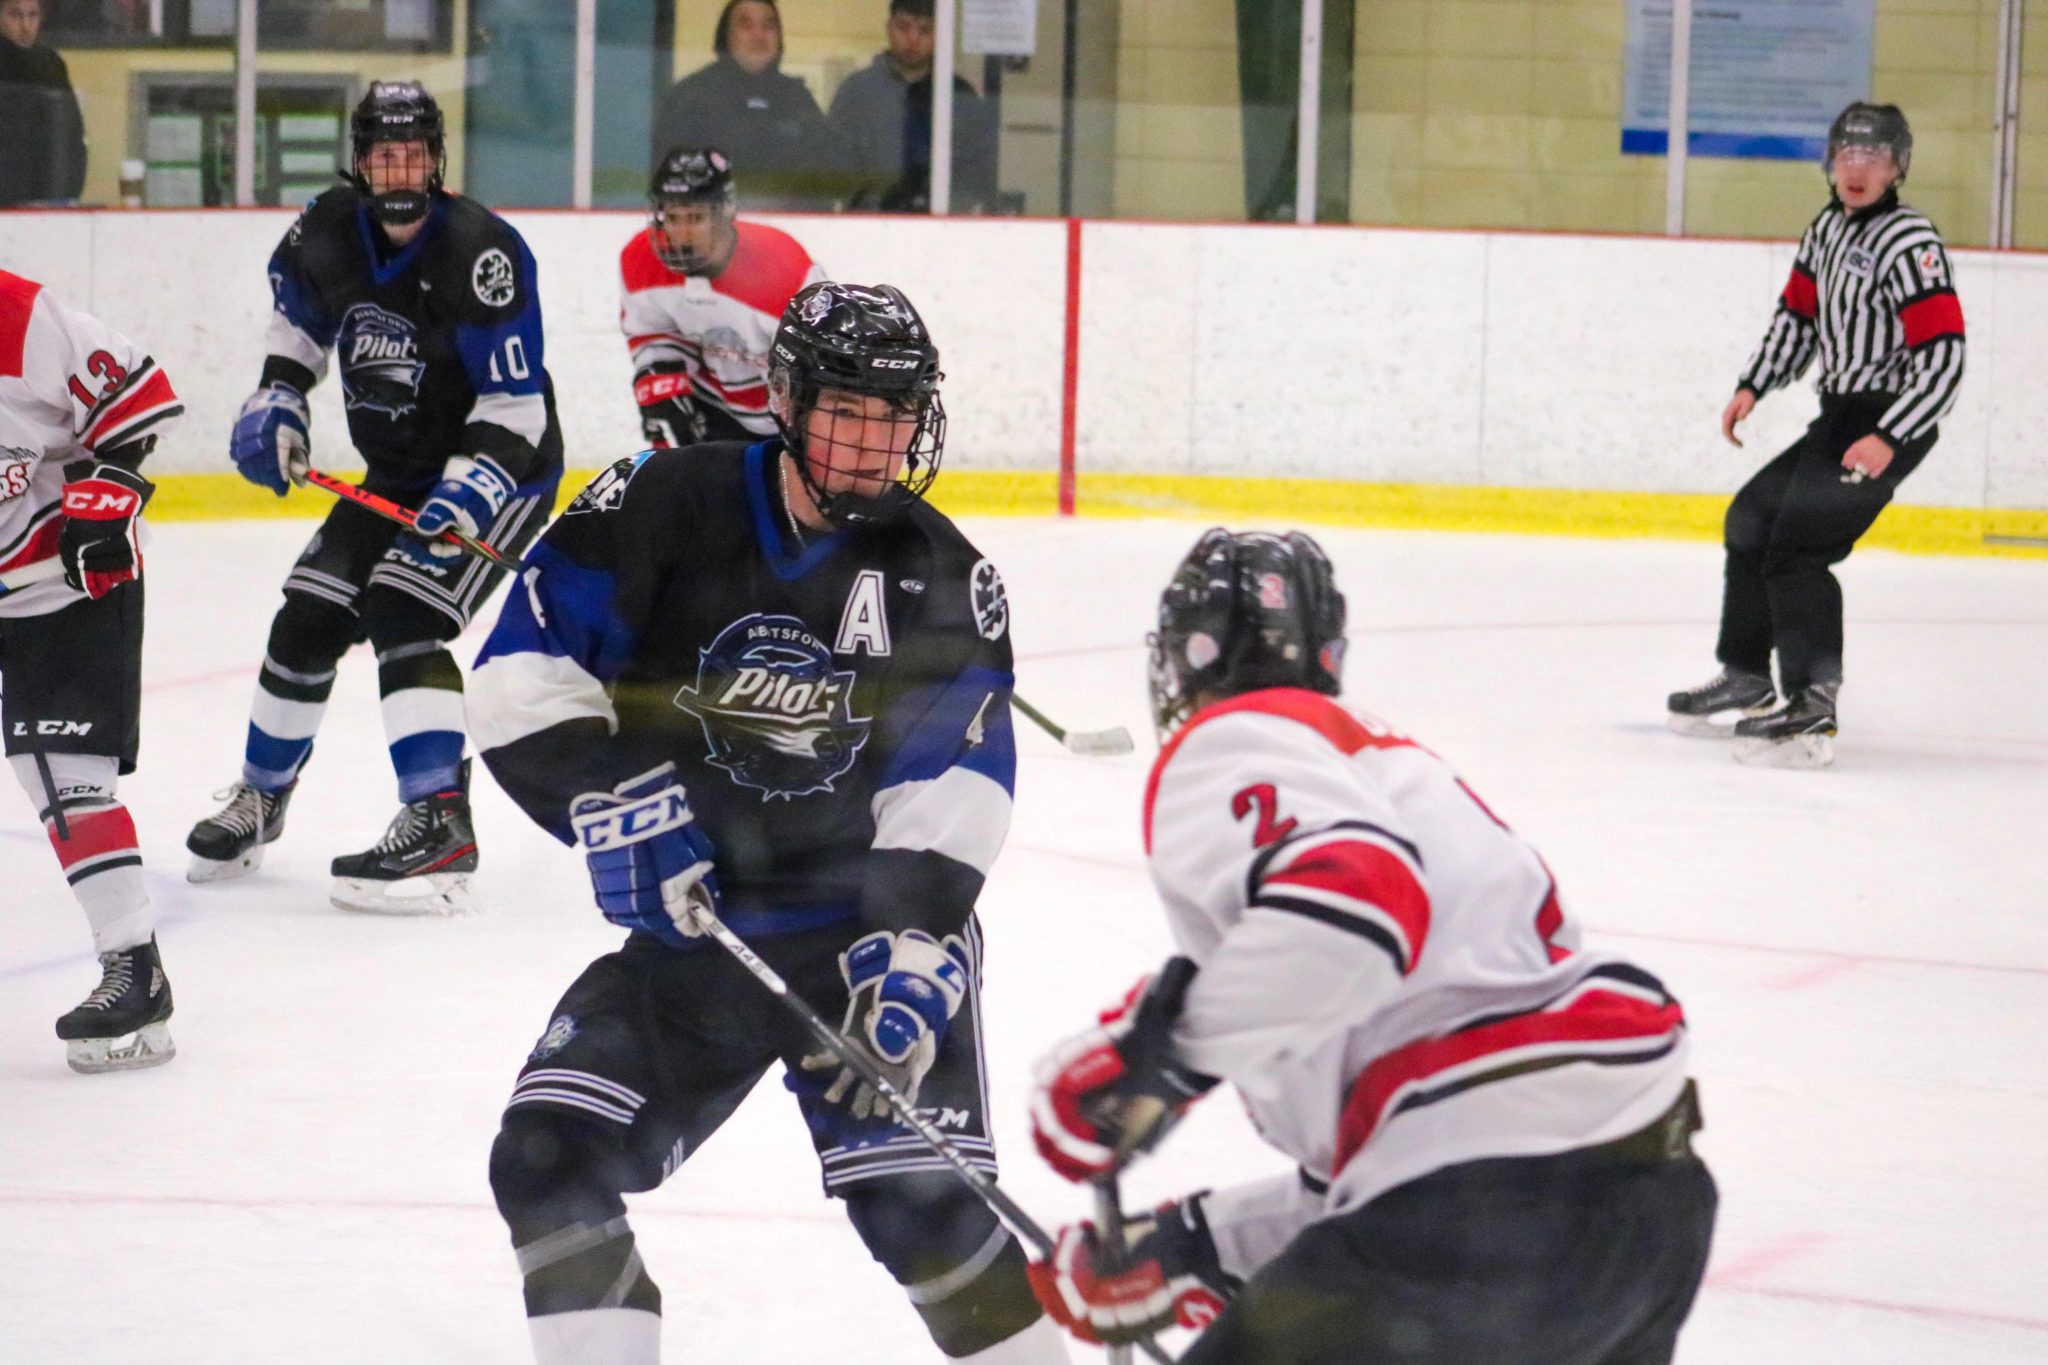 Pilots Unable to Fend Off Port Moody Comeback